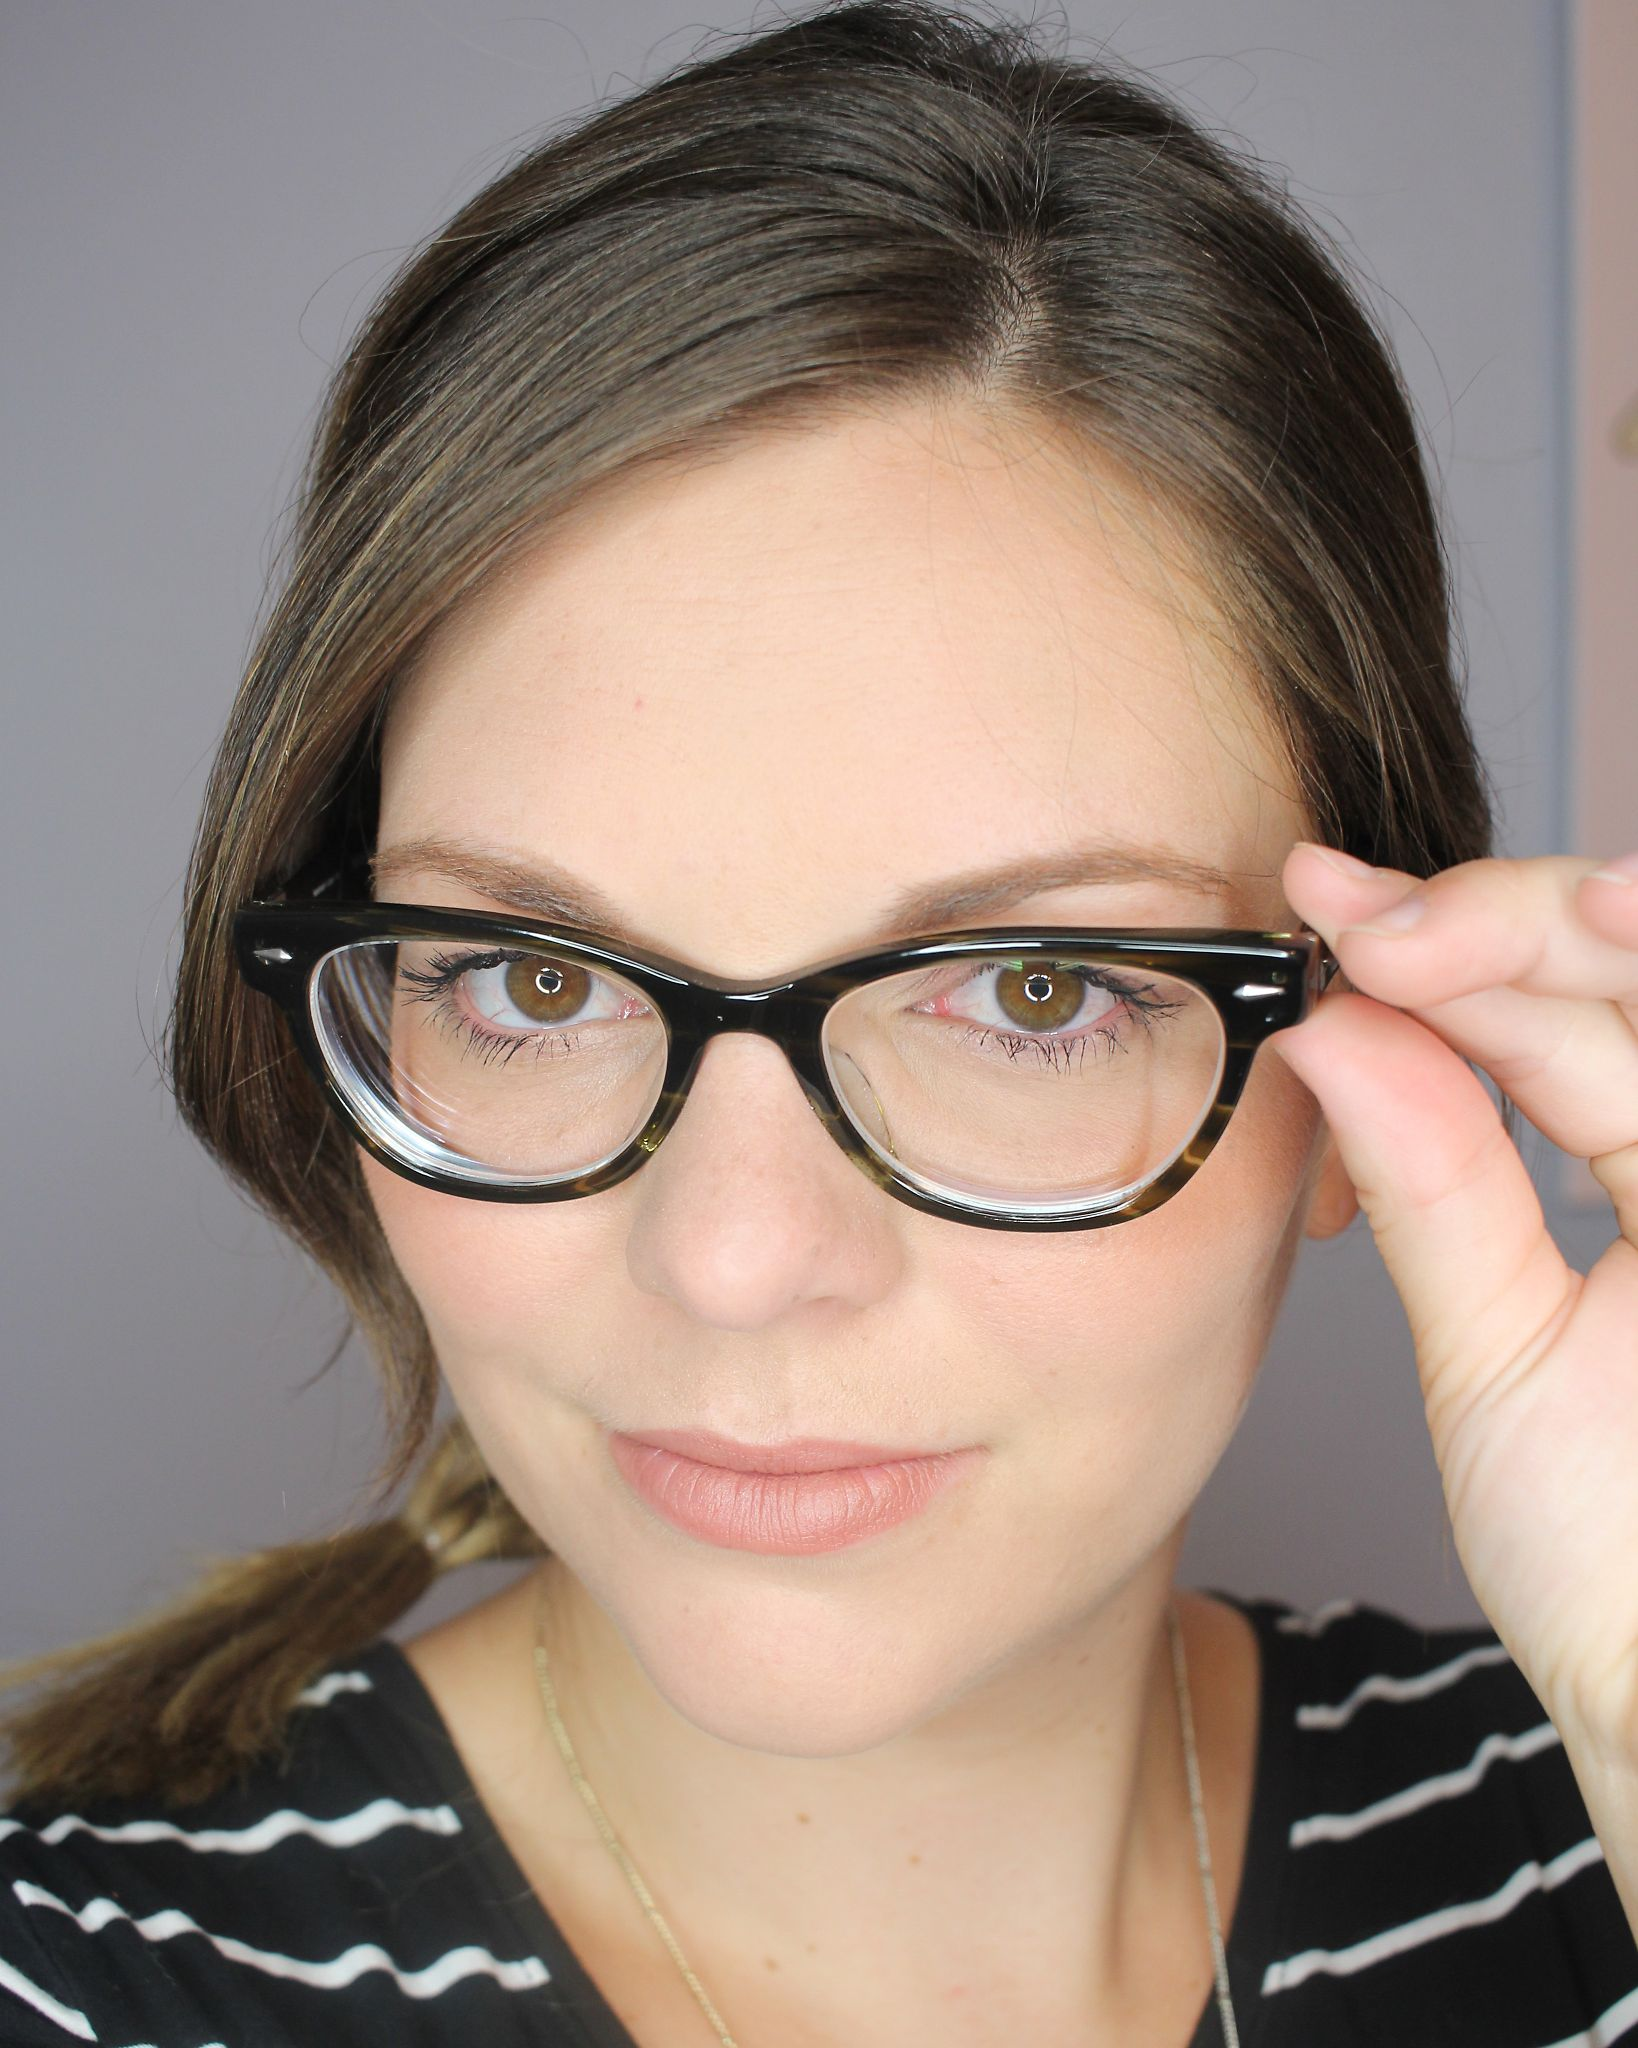 Makeup you can wear with glasses